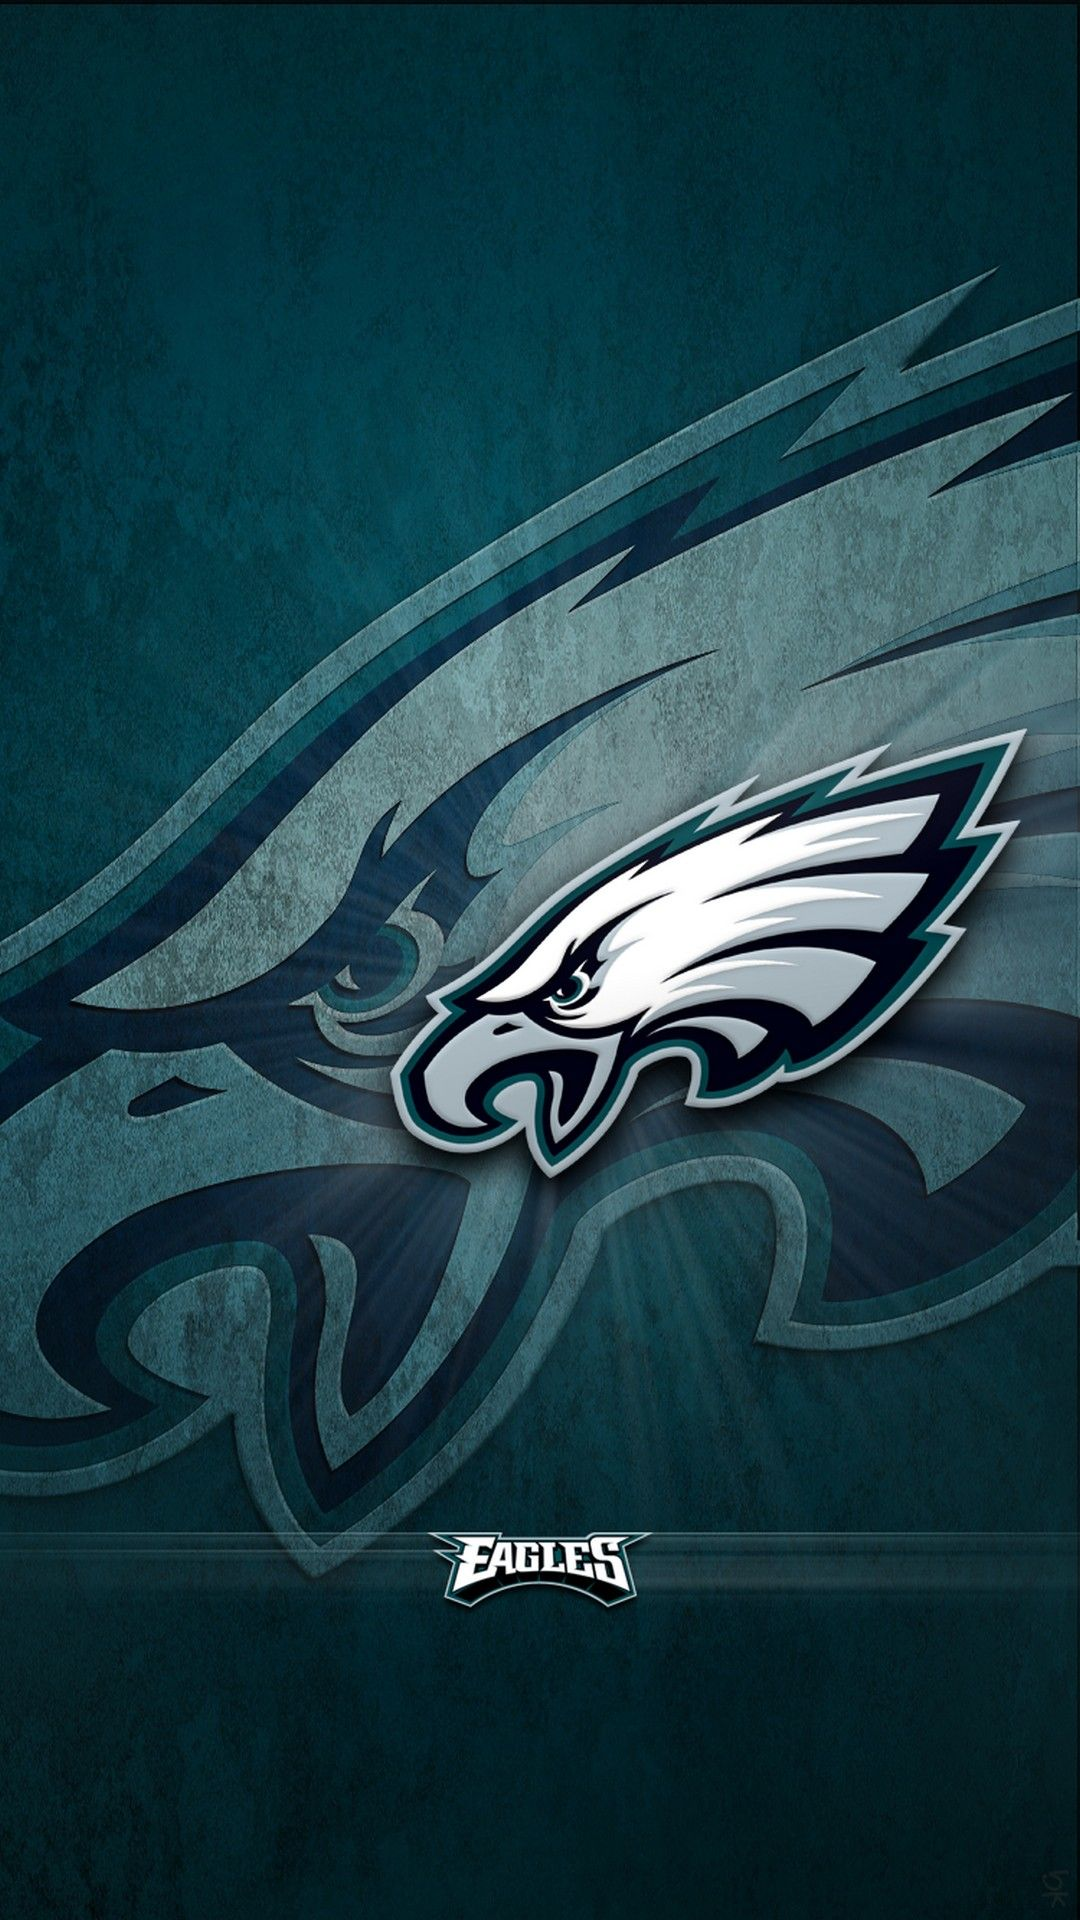 Nfl Eagles Iphone 7 Plus Wallpaper   Philadelphia Eagles Iphone 6 1080x1920